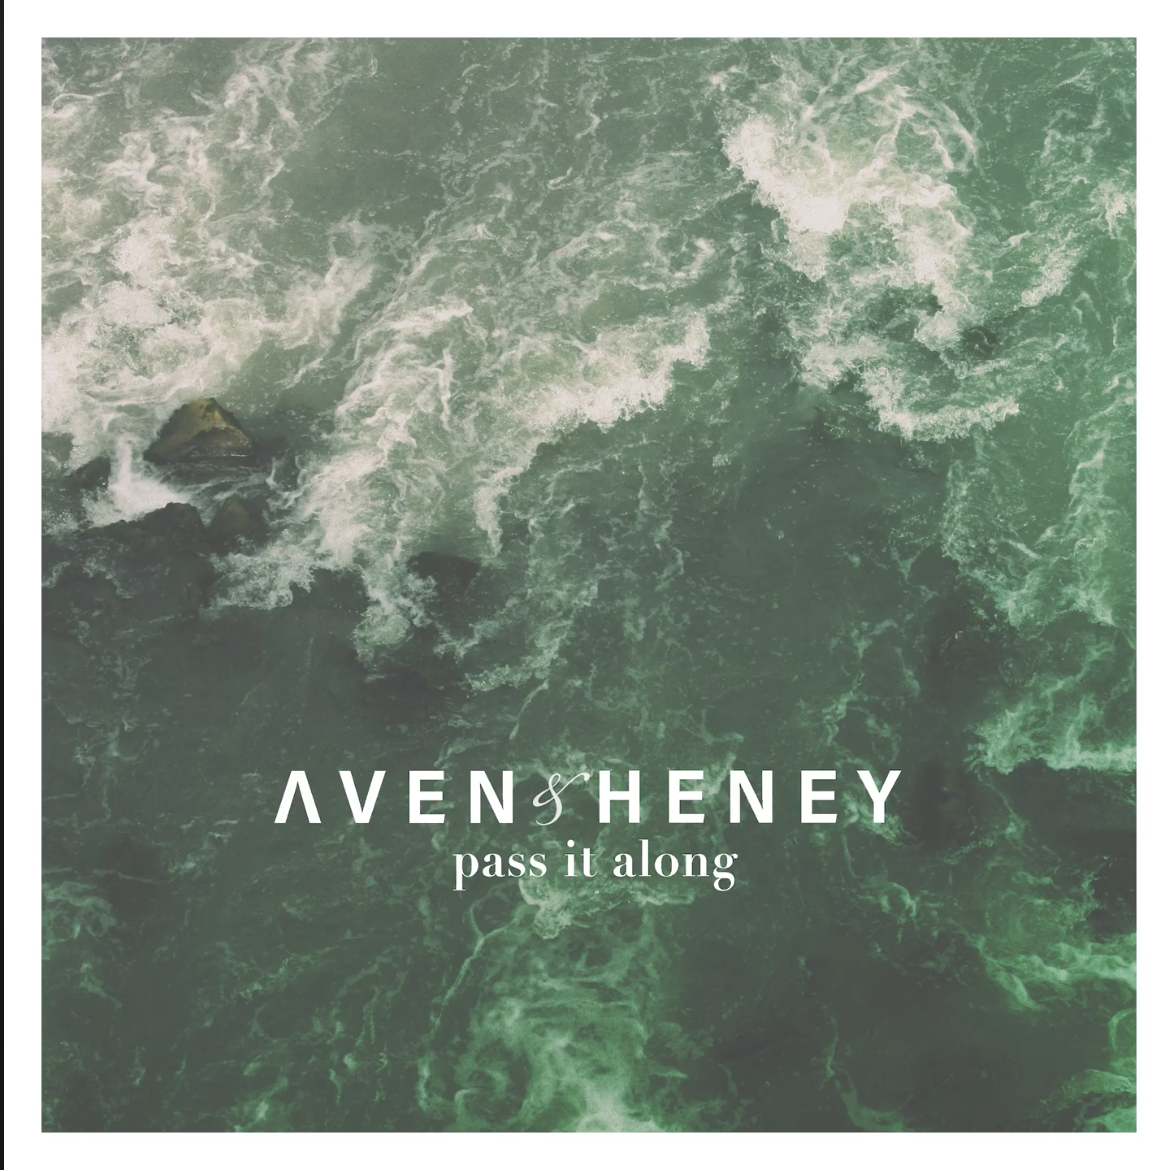 Aven & Heney - Pass It Along (Producer, Engineer, Mixing)